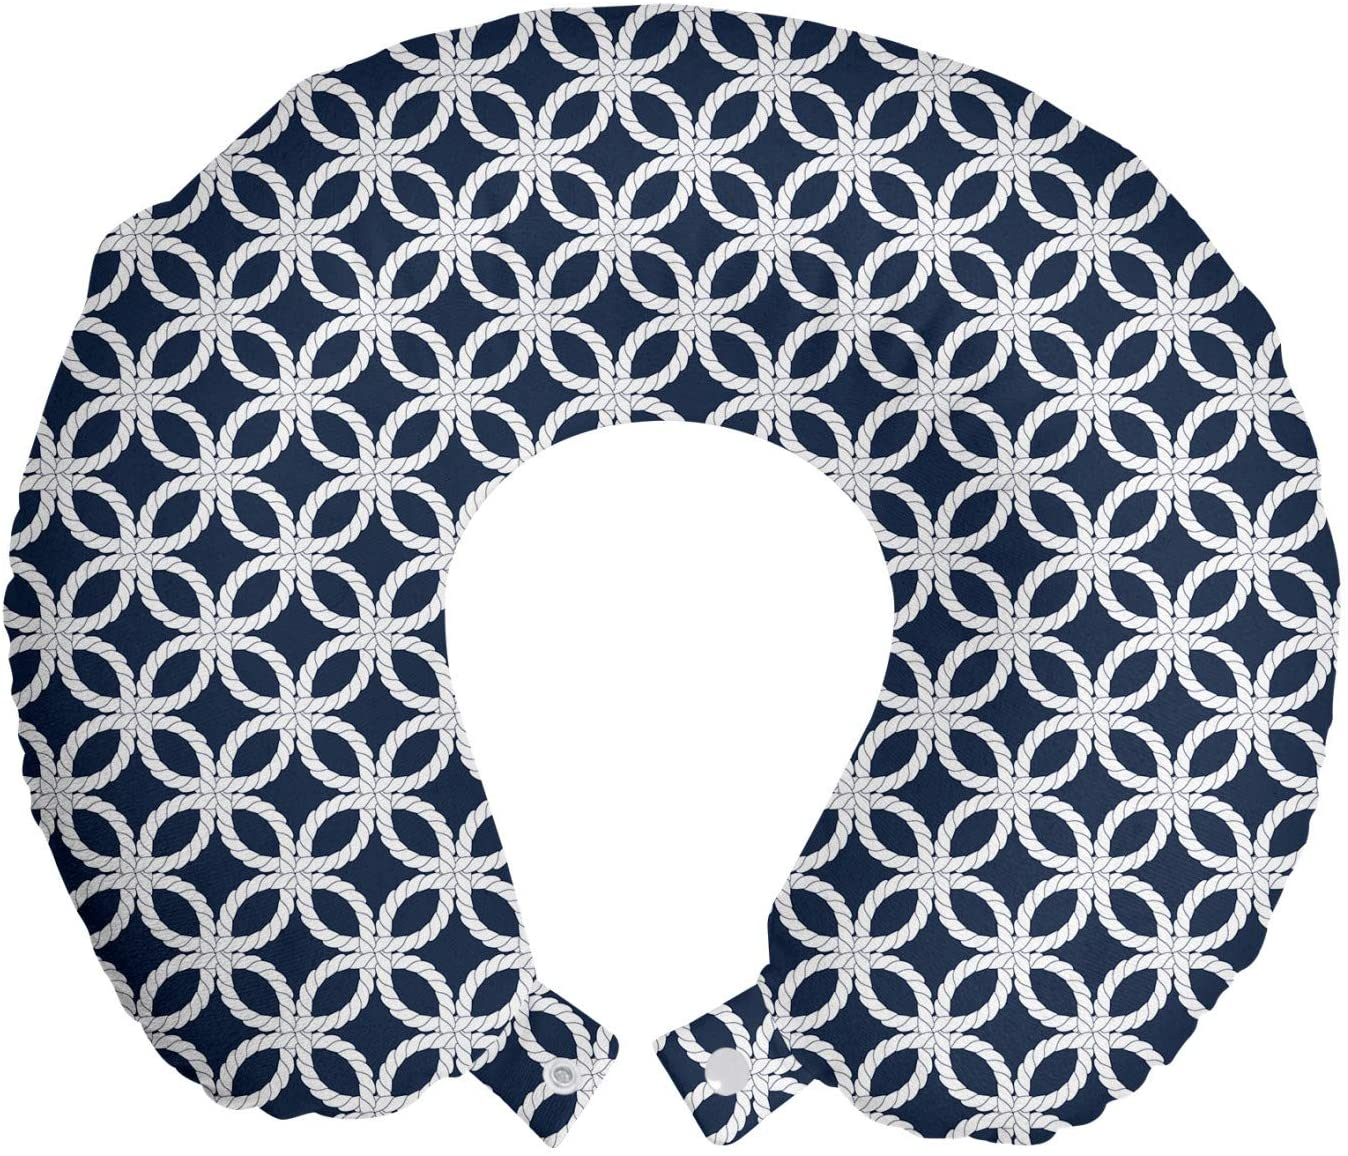 Ambesonne Navy Blue Travel Pillow Neck Rest, Marine Rope in Geometric Pattern Design Ocean Travel Cruise Mosaic Ornament, Memory Foam Traveling Accessory for Airplane and Car, 12